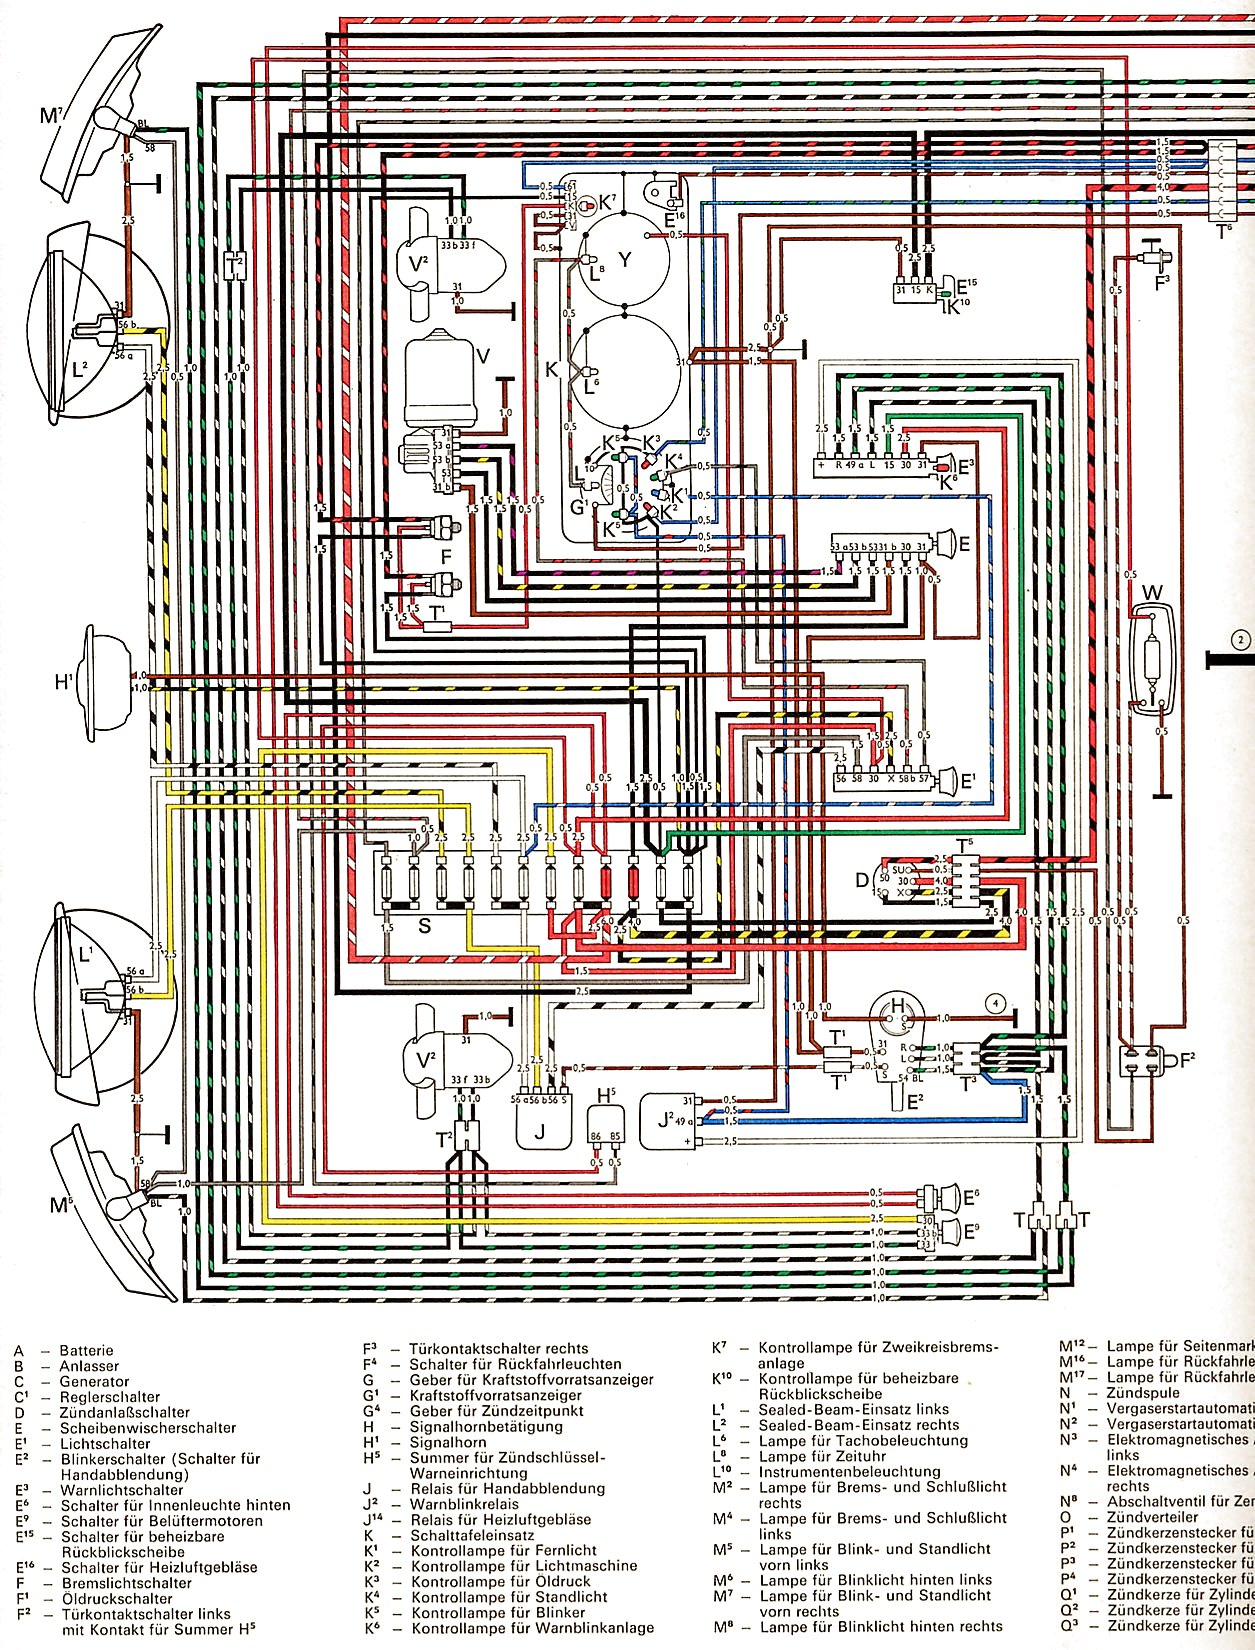 Transporter_USA_from_August_1971 1 how to read vw wiring diagrams basic motorcycle wiring diagram Wiring Harness Diagram at gsmx.co